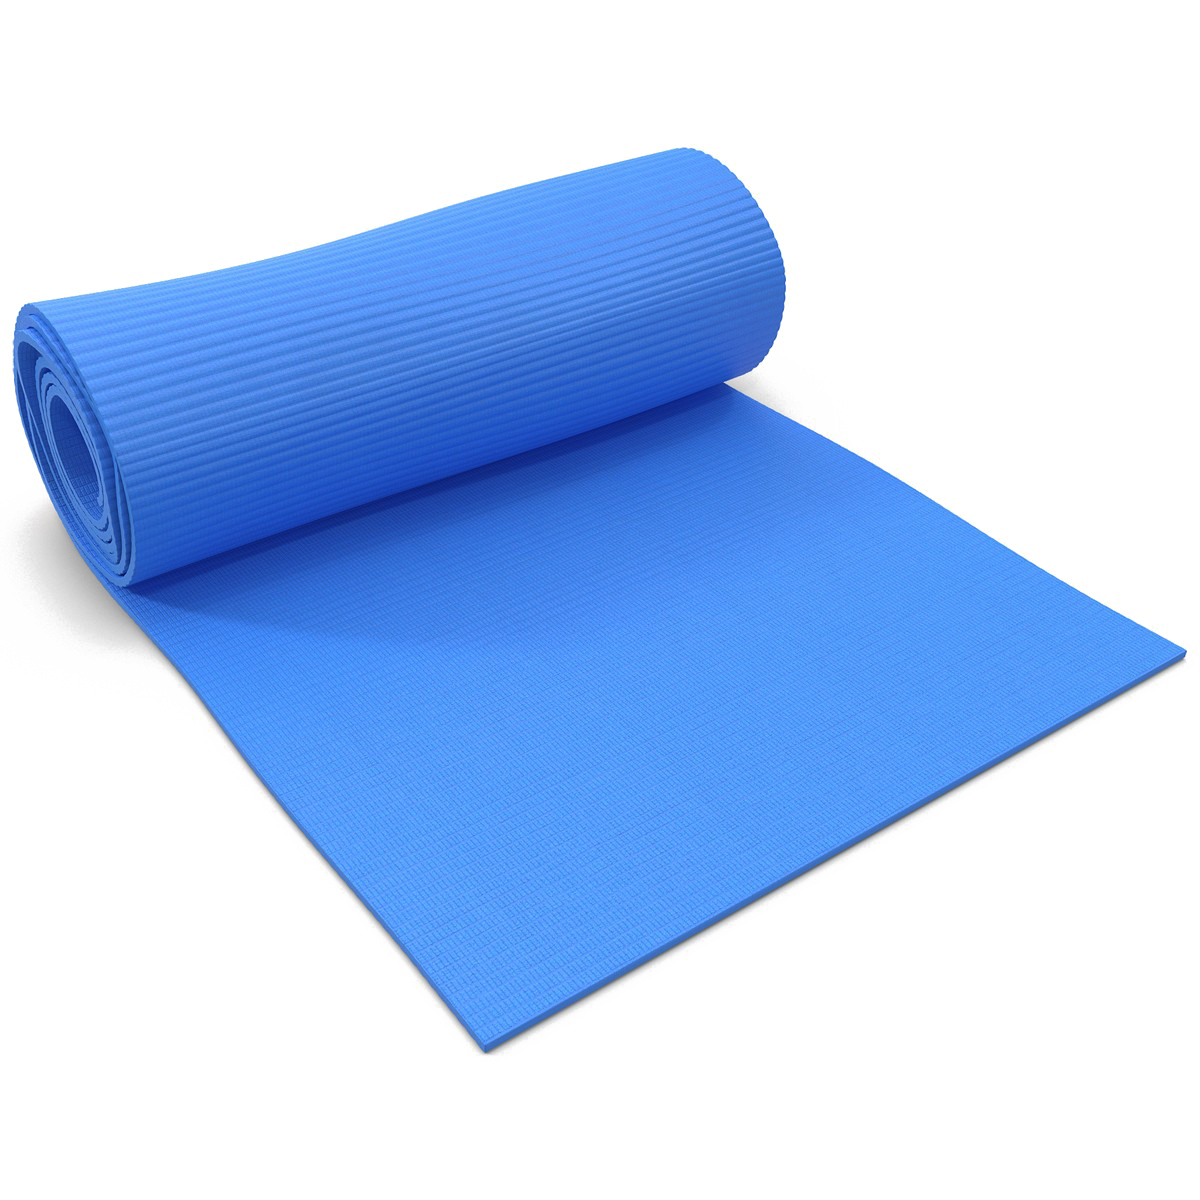 Image result for yoga mat clipart